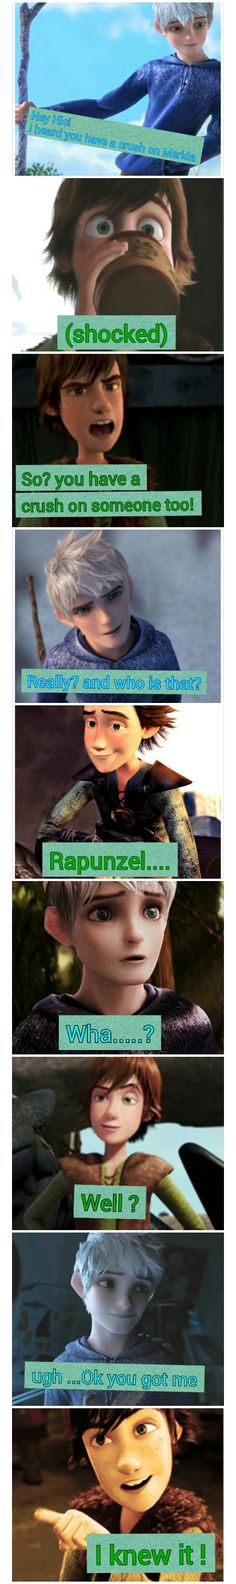 Boys Talk : Jack and Hiccup by insyirah321.deviantart.com on @deviantART